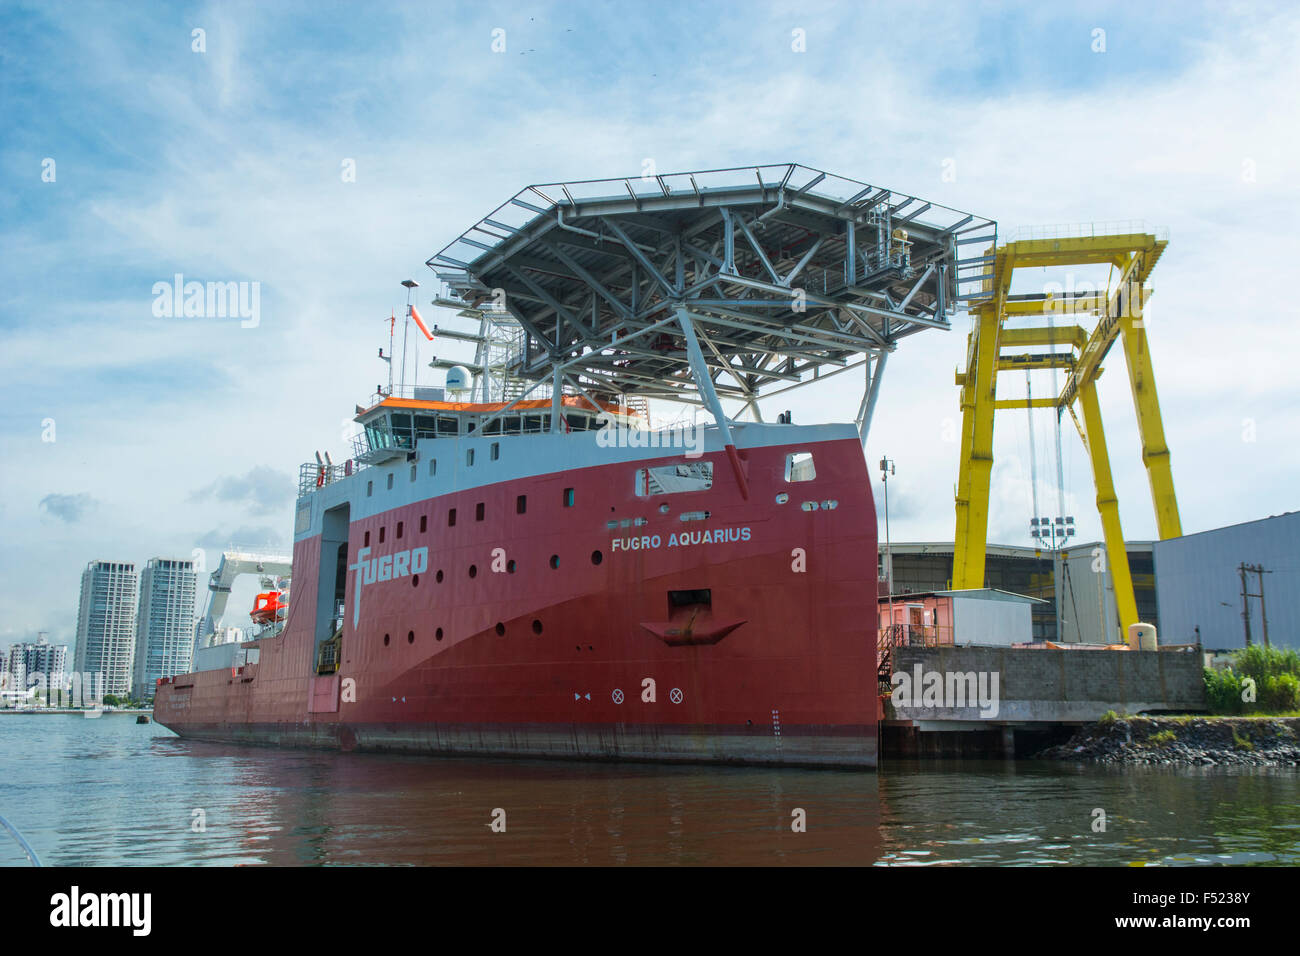 Fugro Aquarius ROV deep water offshore vessel built and moored at Wilson sons shipyard in Guarujá city, SP, - Stock Image